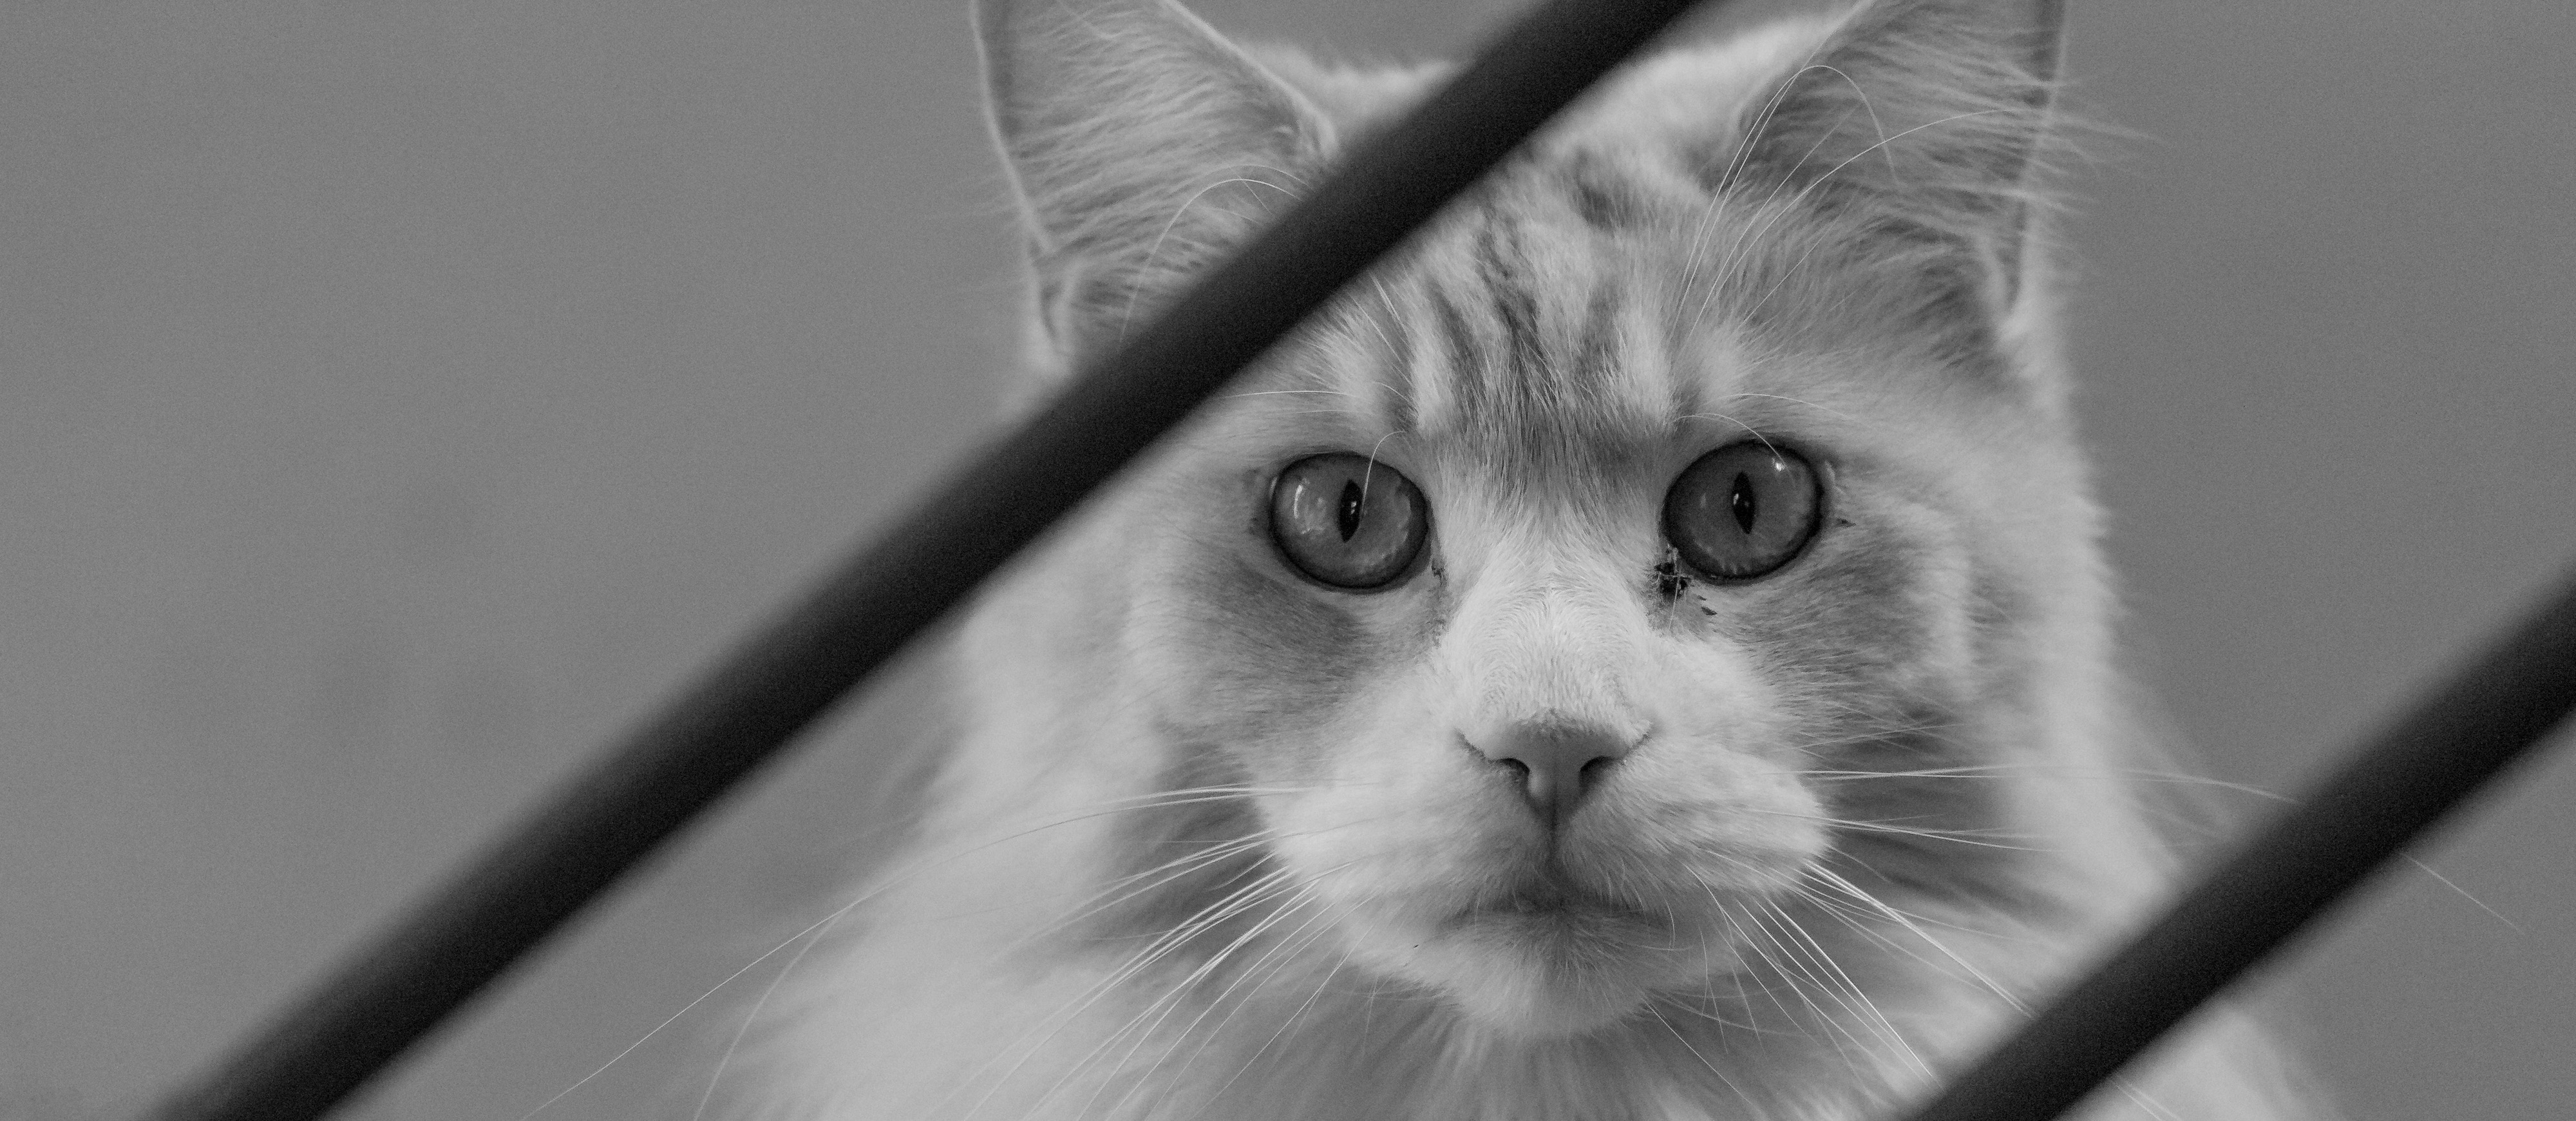 Cat on the stairs in black and white